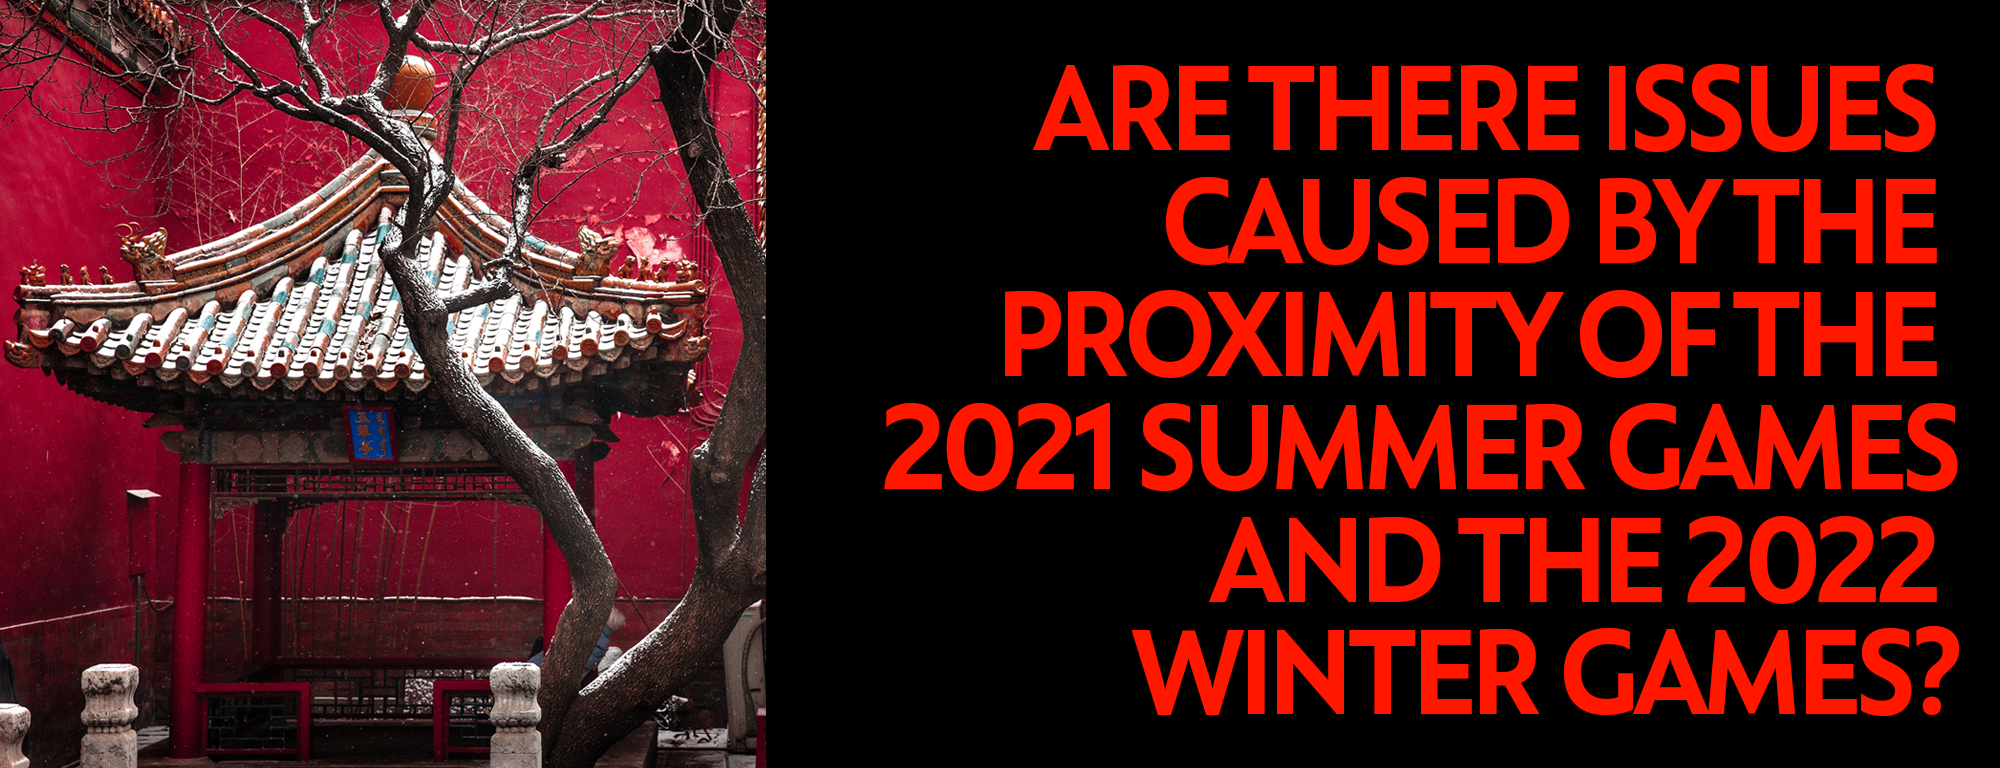 Are there issues caused by the proximity of the 2021 Summer Games and the 2022 Winter Games?